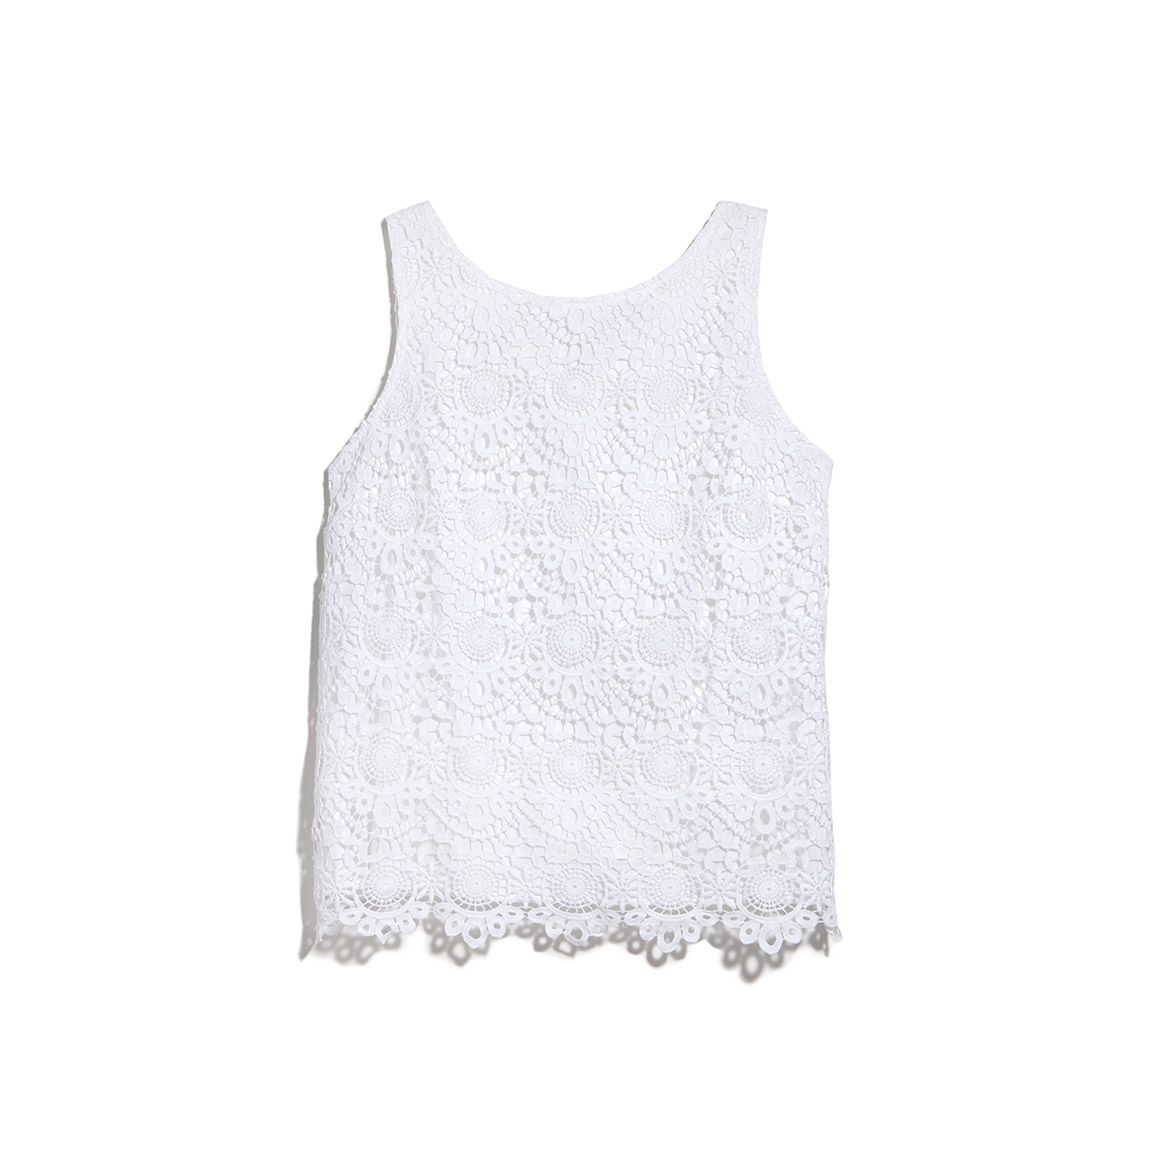 Lilly for Target Crochet Tank Top | Style | Pinterest | Lilly ...